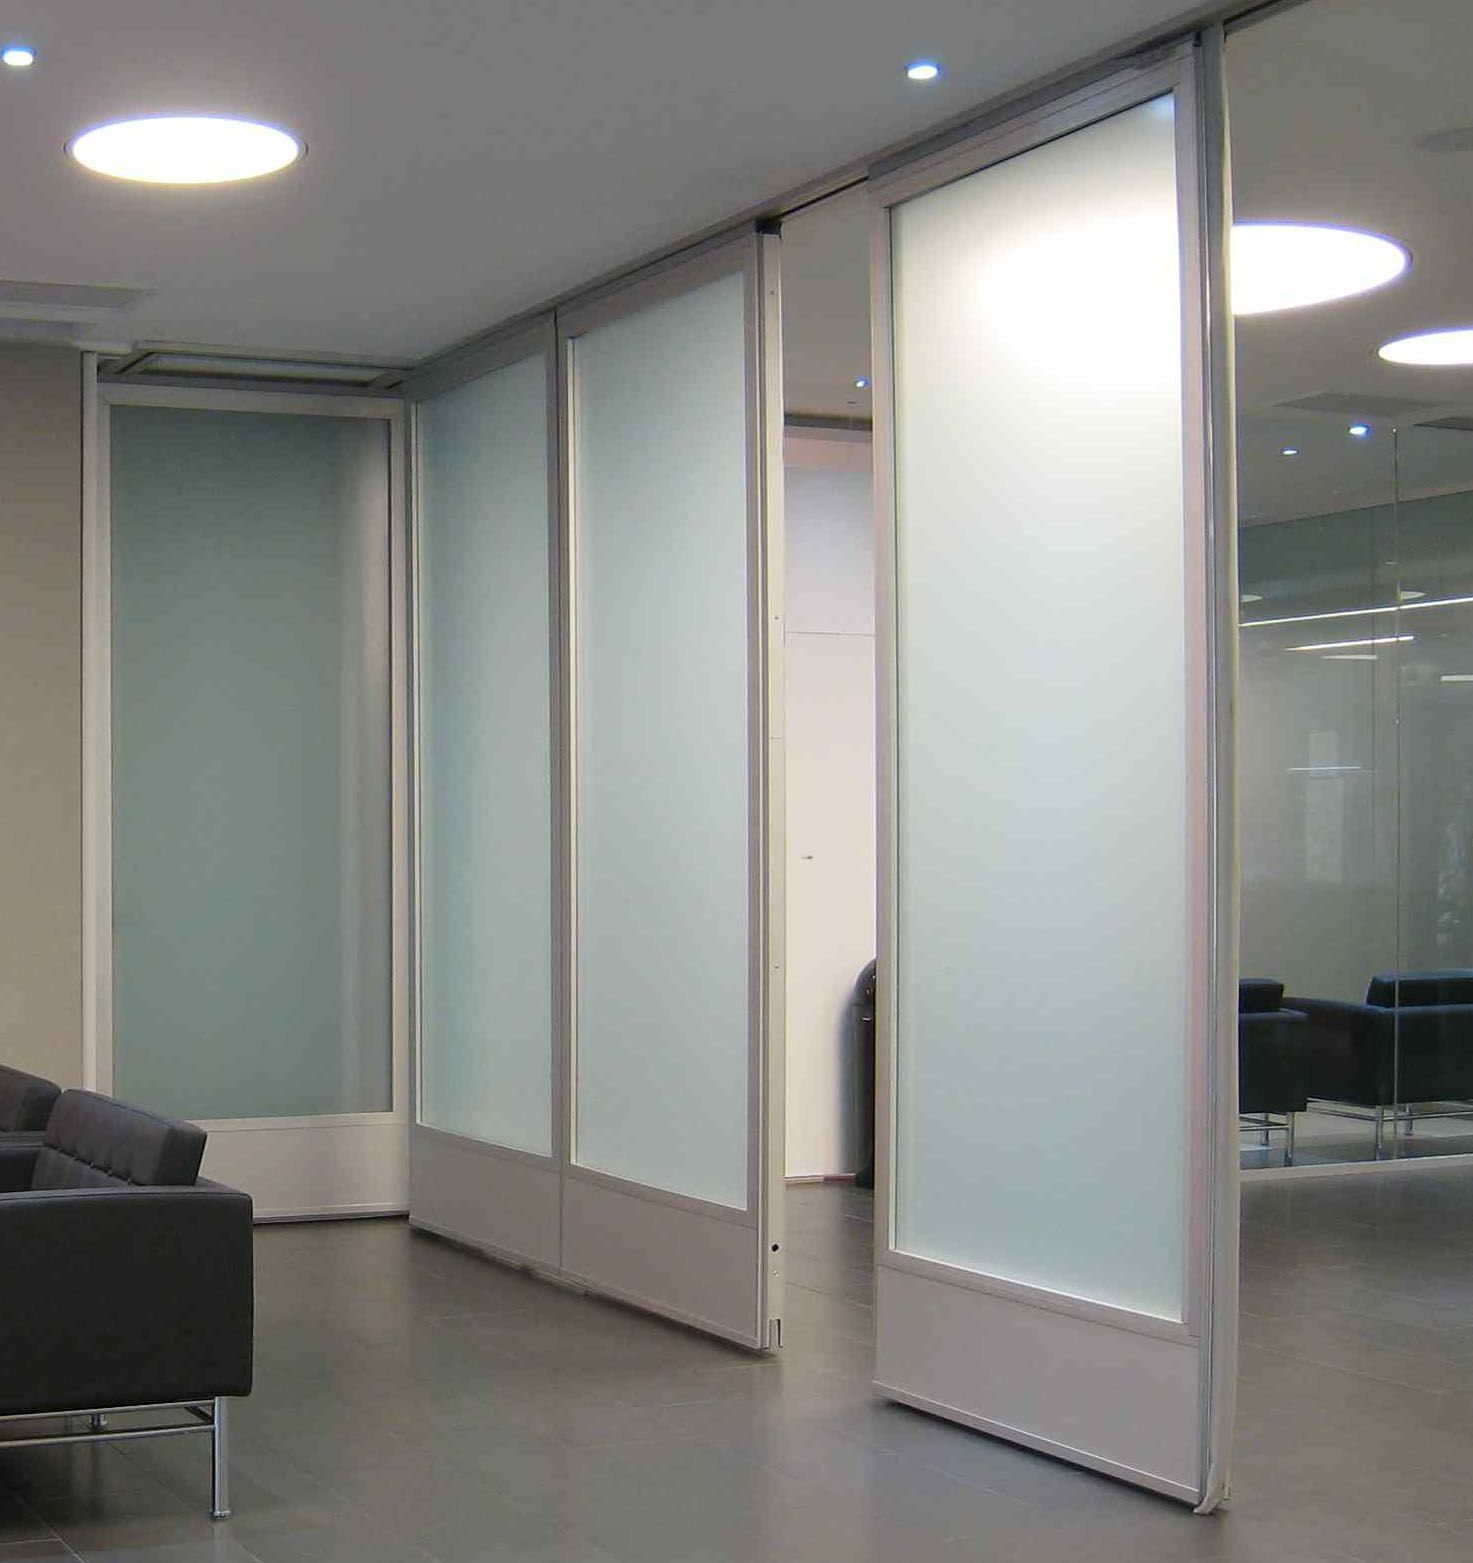 Movable Room Divider Ideas Movable Glass Doorsglass Wallhufcor  Work  Student Life Center